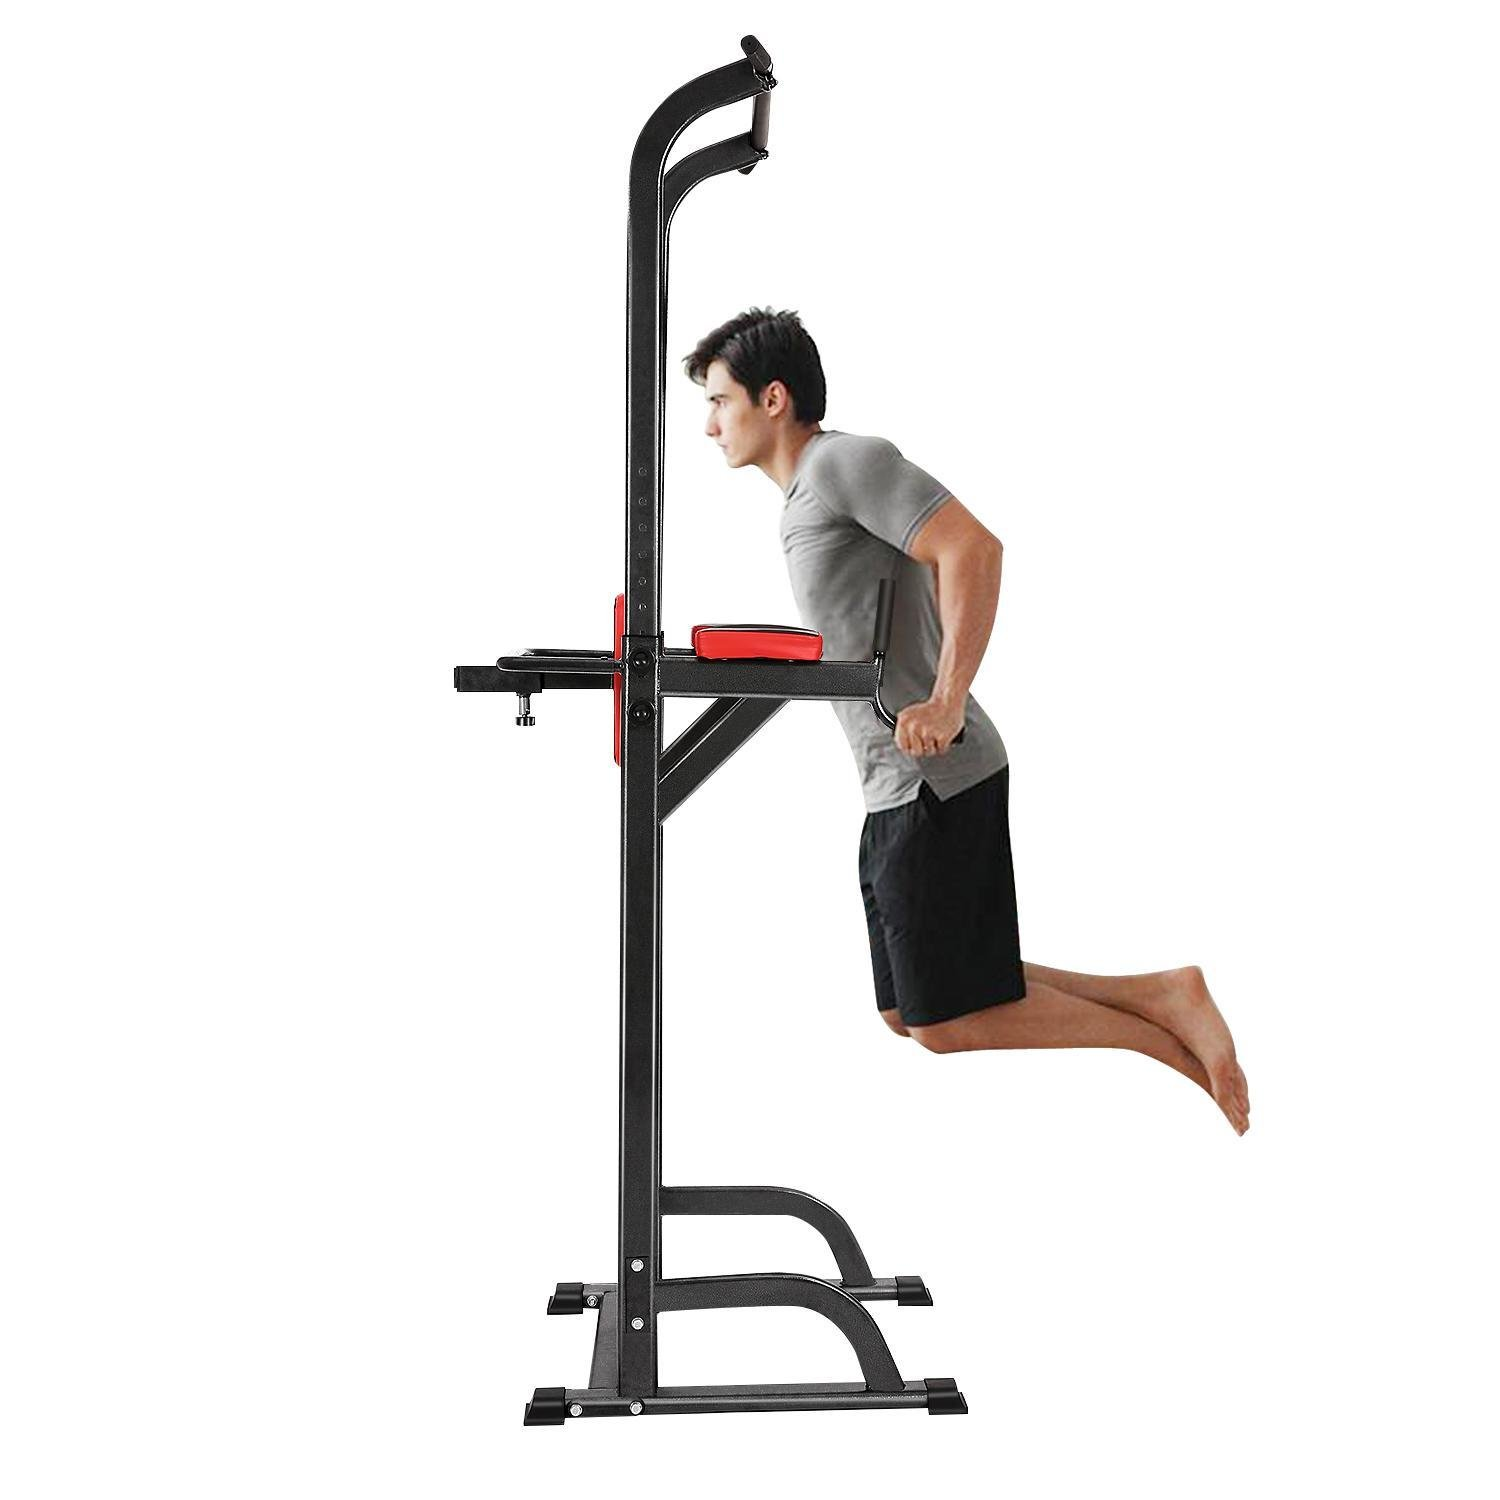 Adjustable Pull Up Chin Up Bar,Pull Up Stand Power Tower Strength Power Tower Fitness Workout Station by Rapesee (Image #3)